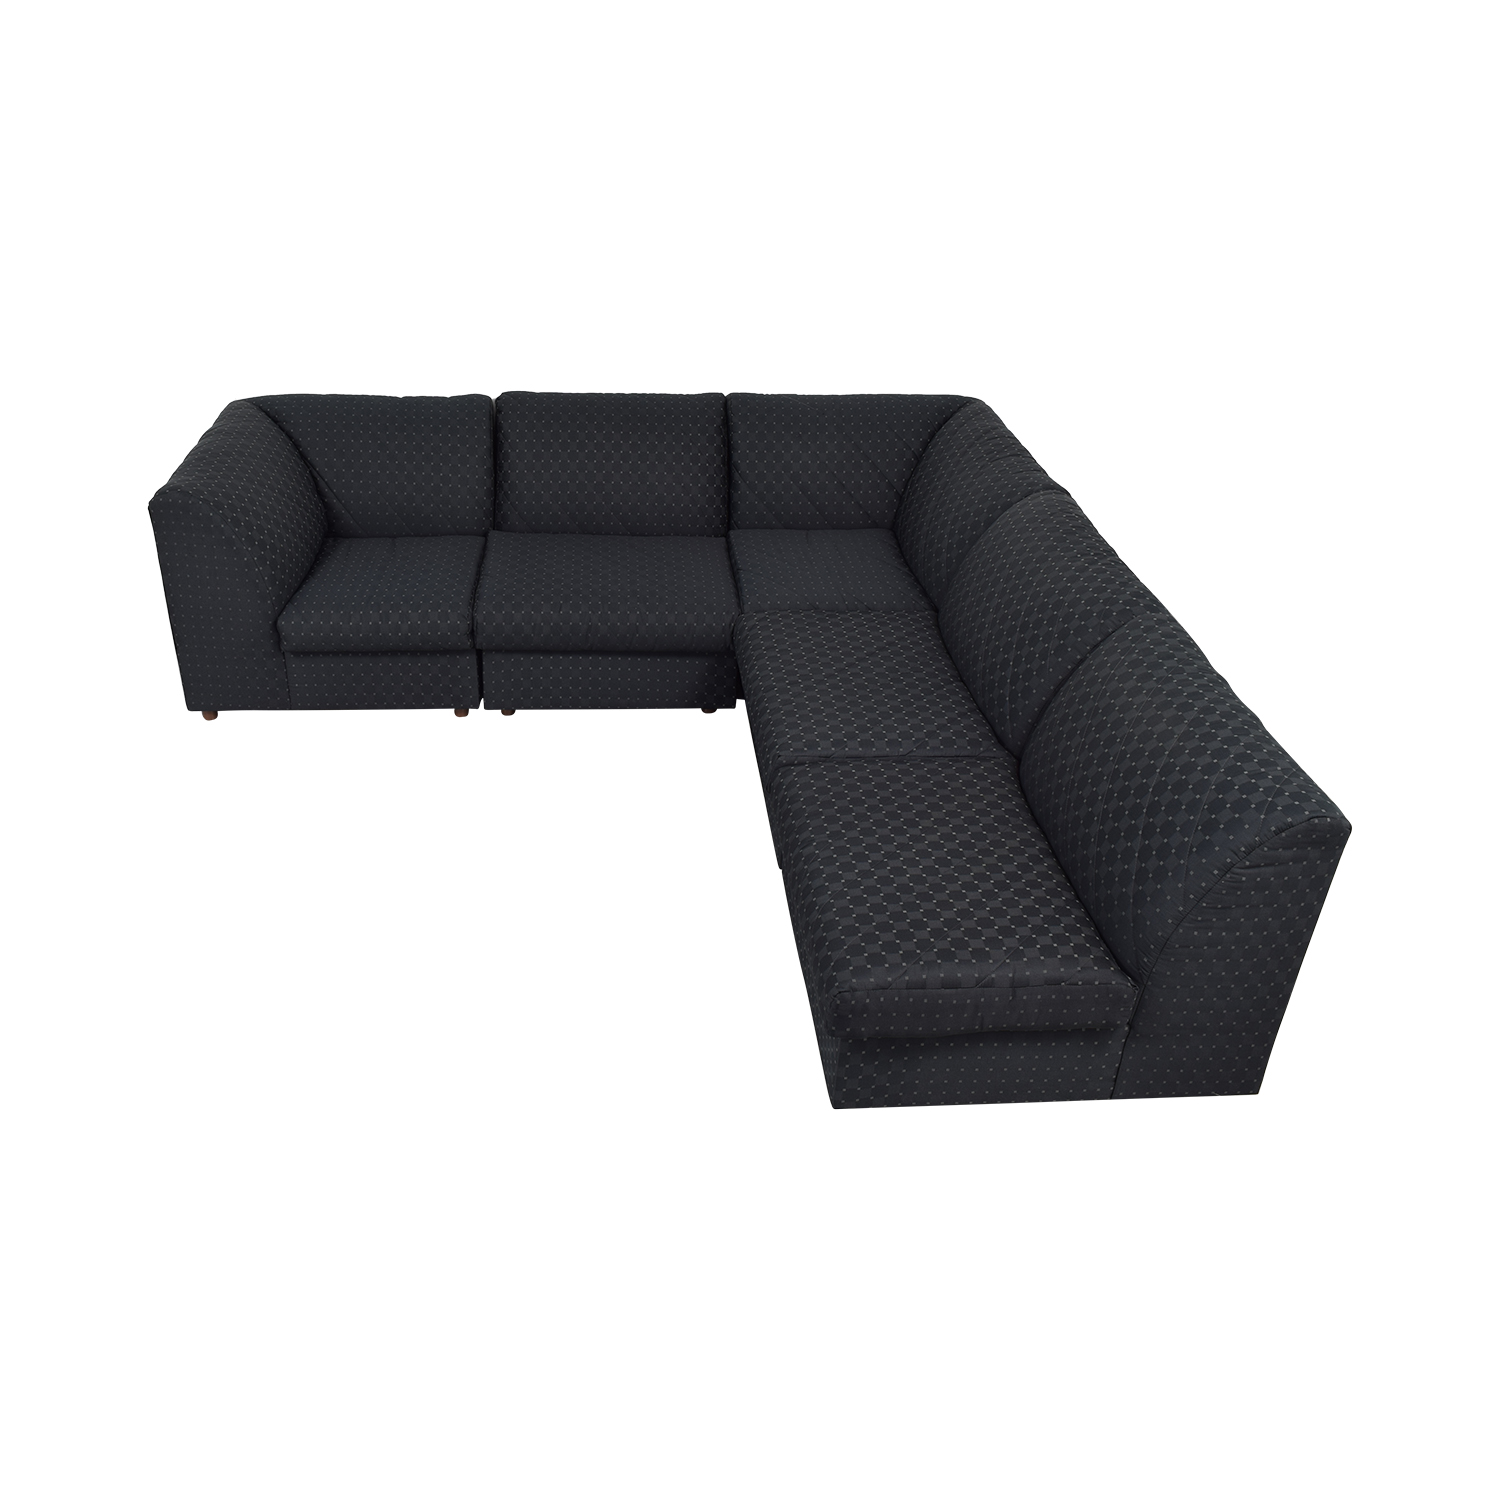 Broyhill Furniture Broyhill Furniture Corner Sectional with Ottoman nyc